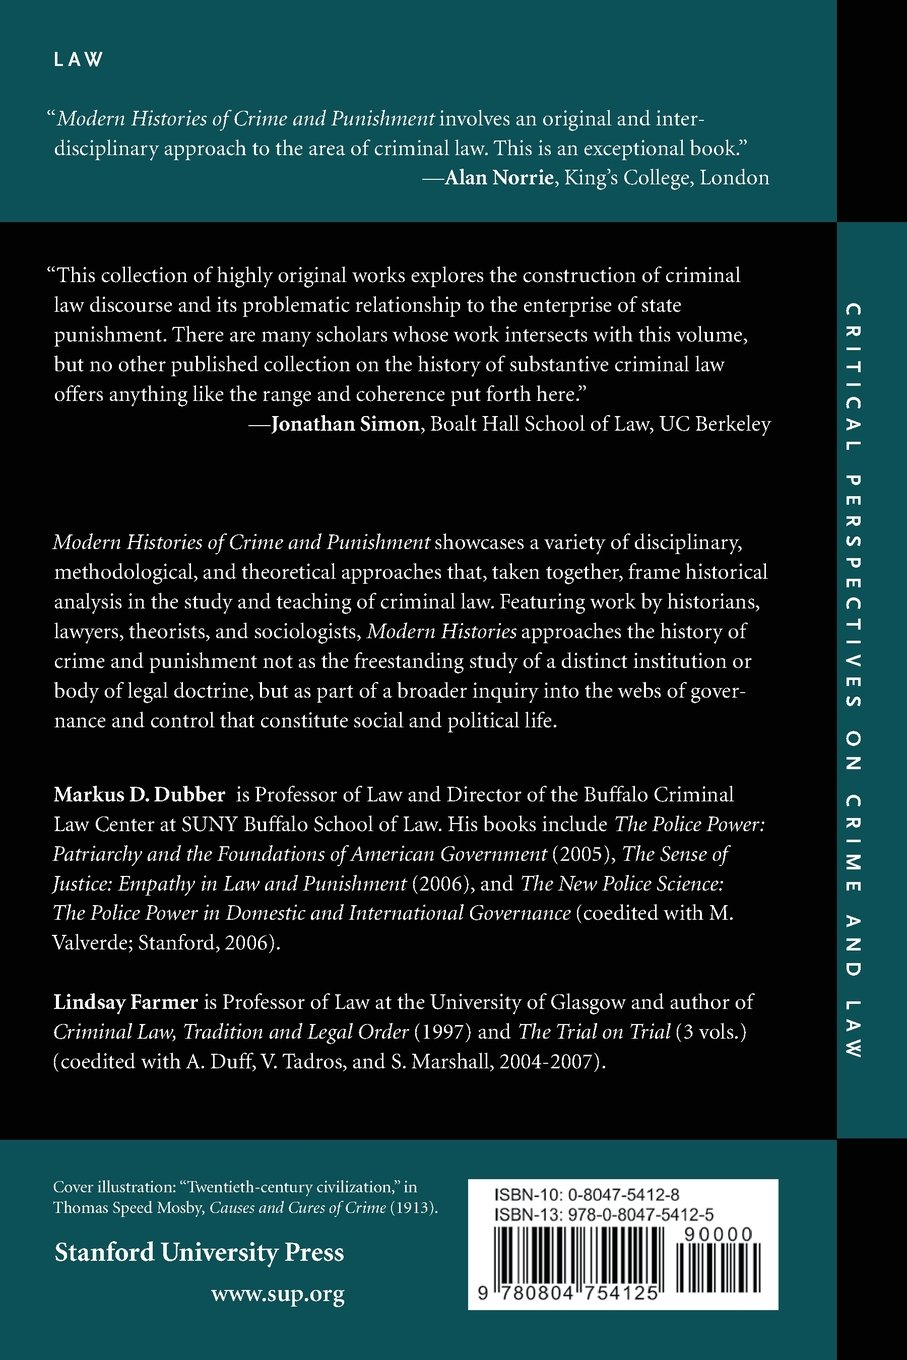 Modern Histories of Crime and Punishment (Critical Perspectives on Crime and Law)